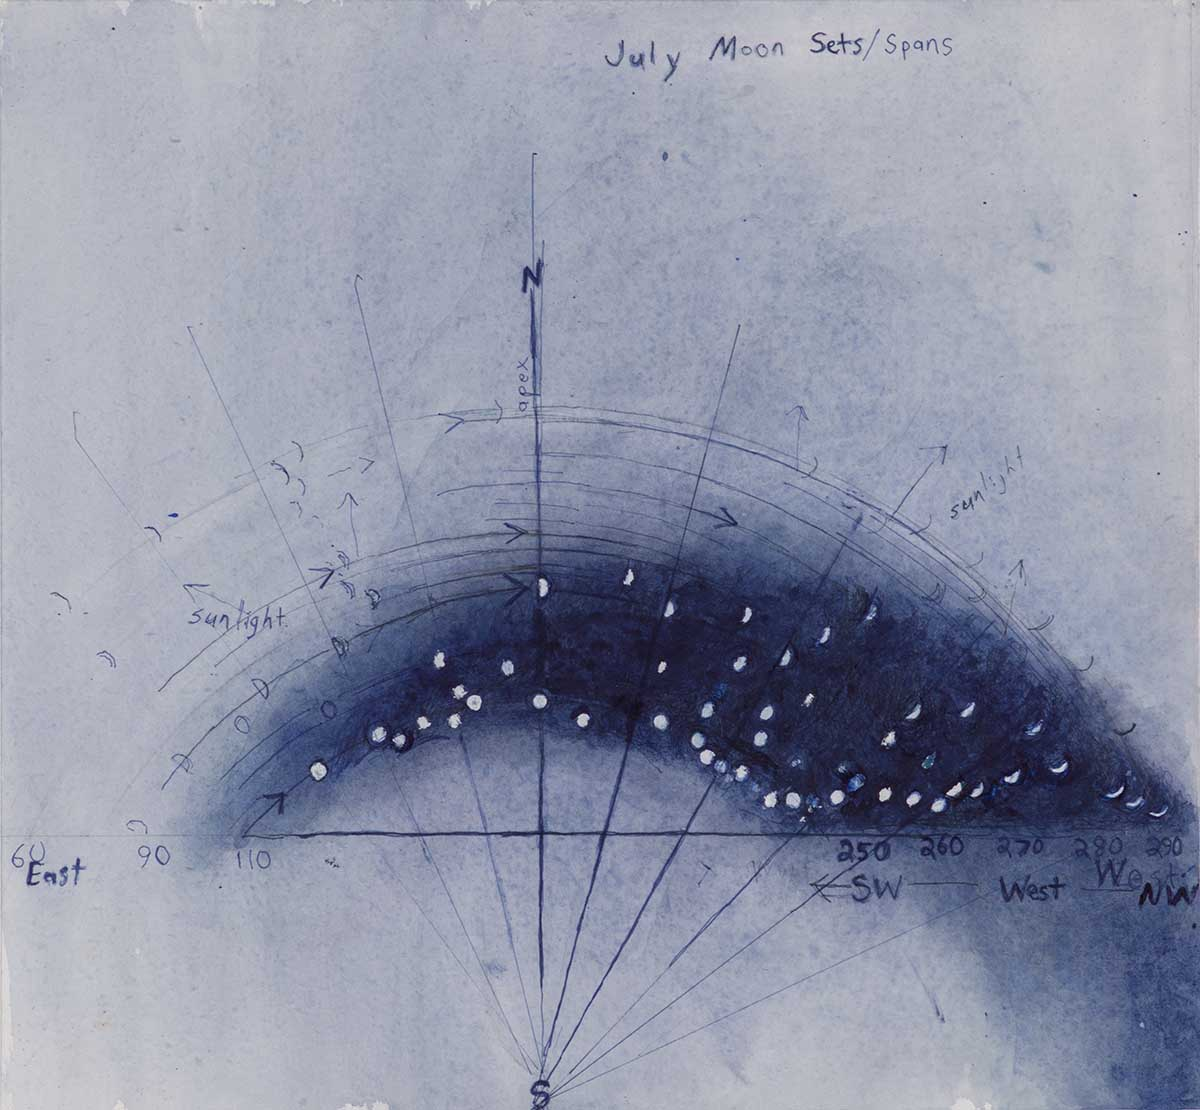 David Niec: July Moon Spans and Sets. 12x13 in, ink and watercolor on paper, 2015.